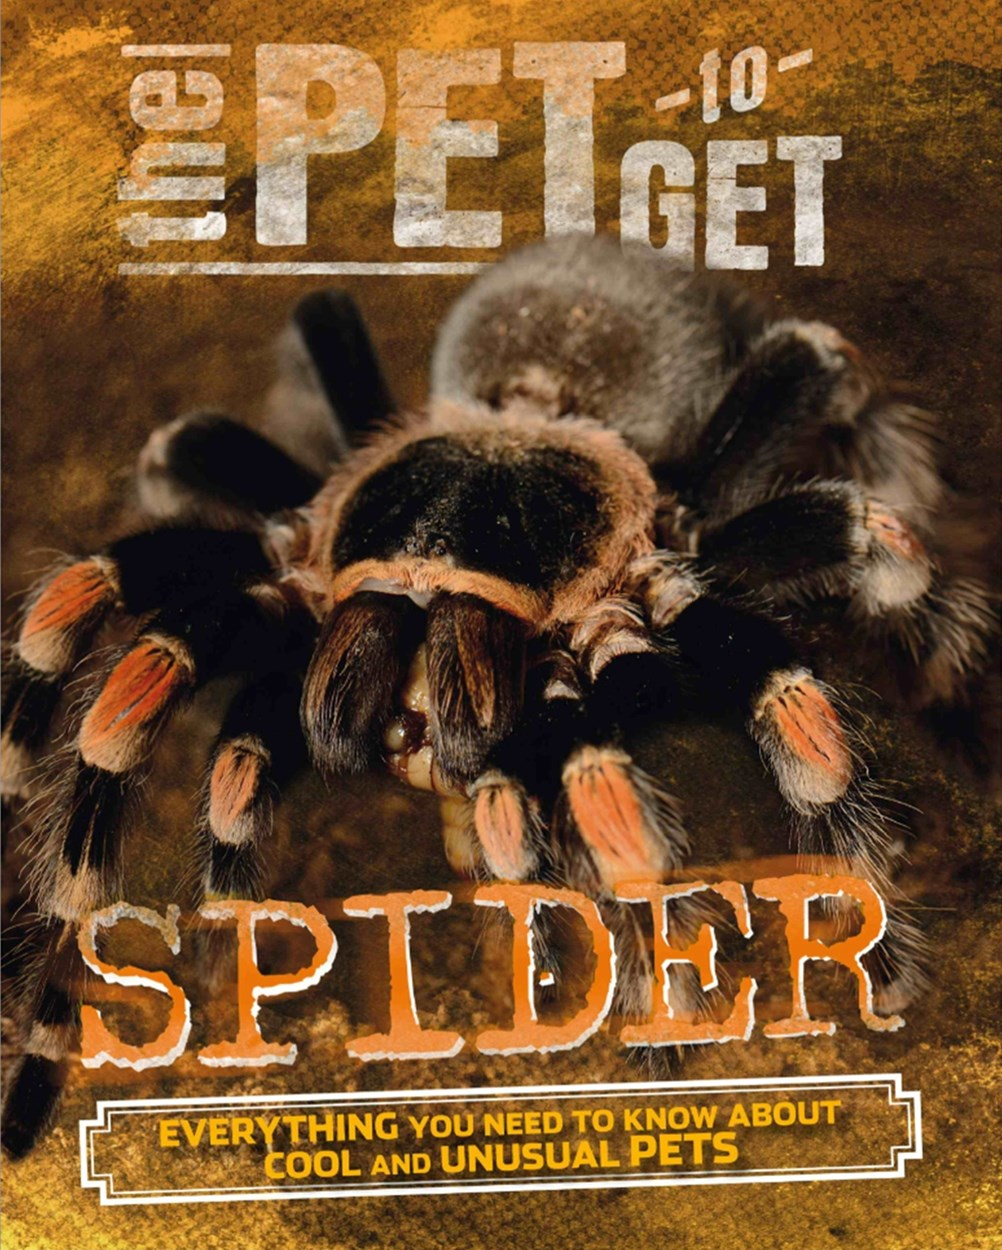 The Pet to Get: Spider